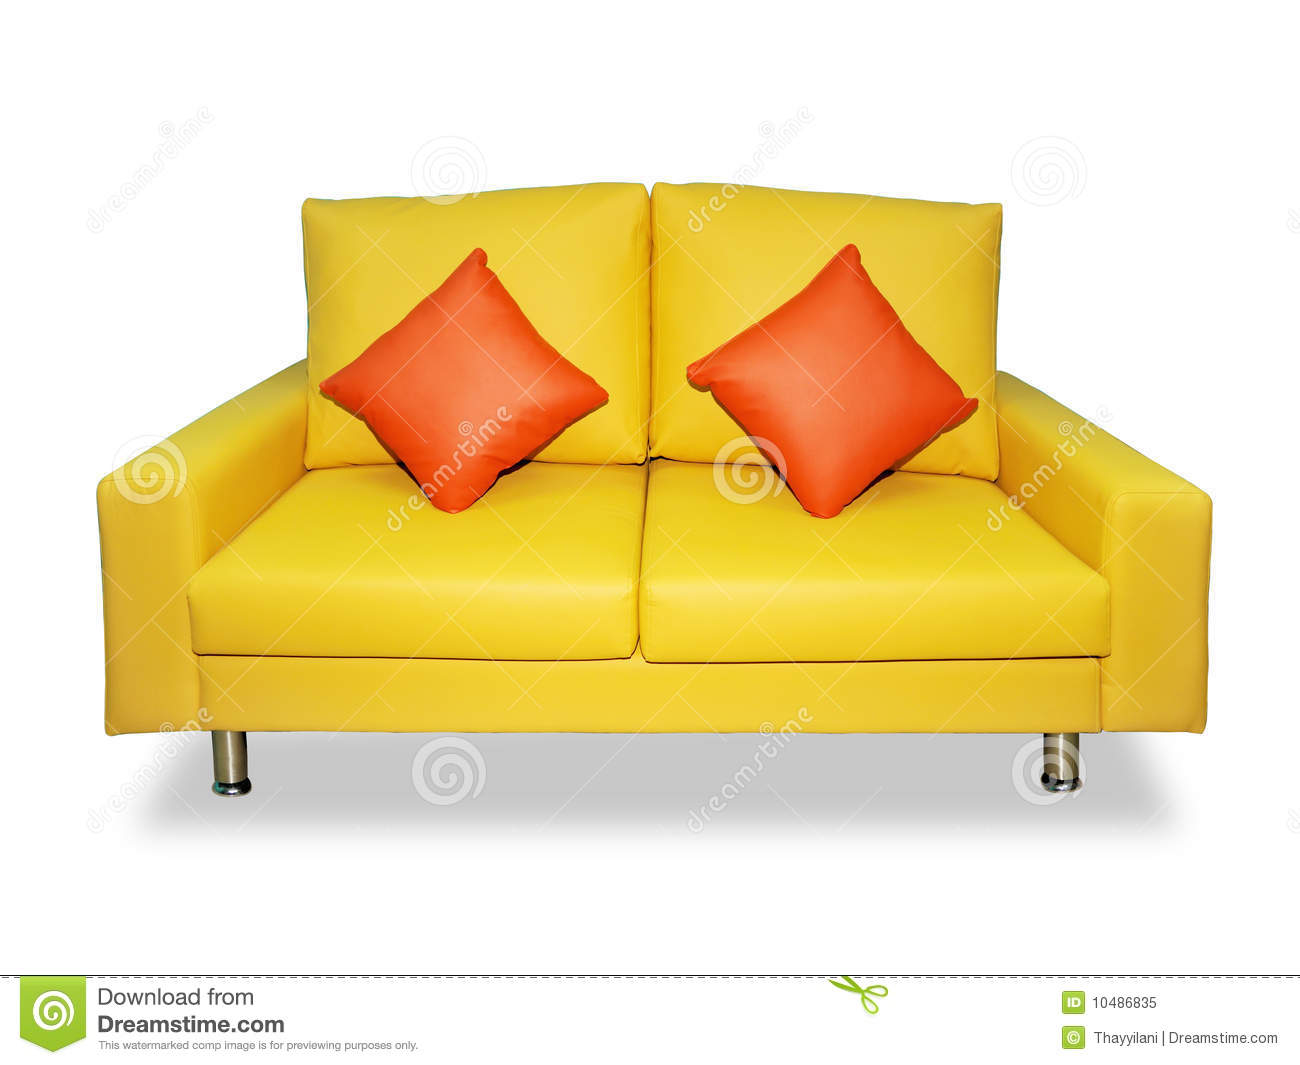 Clean Yellow Sofa And Pillows Stock Image Image Of Laying Green